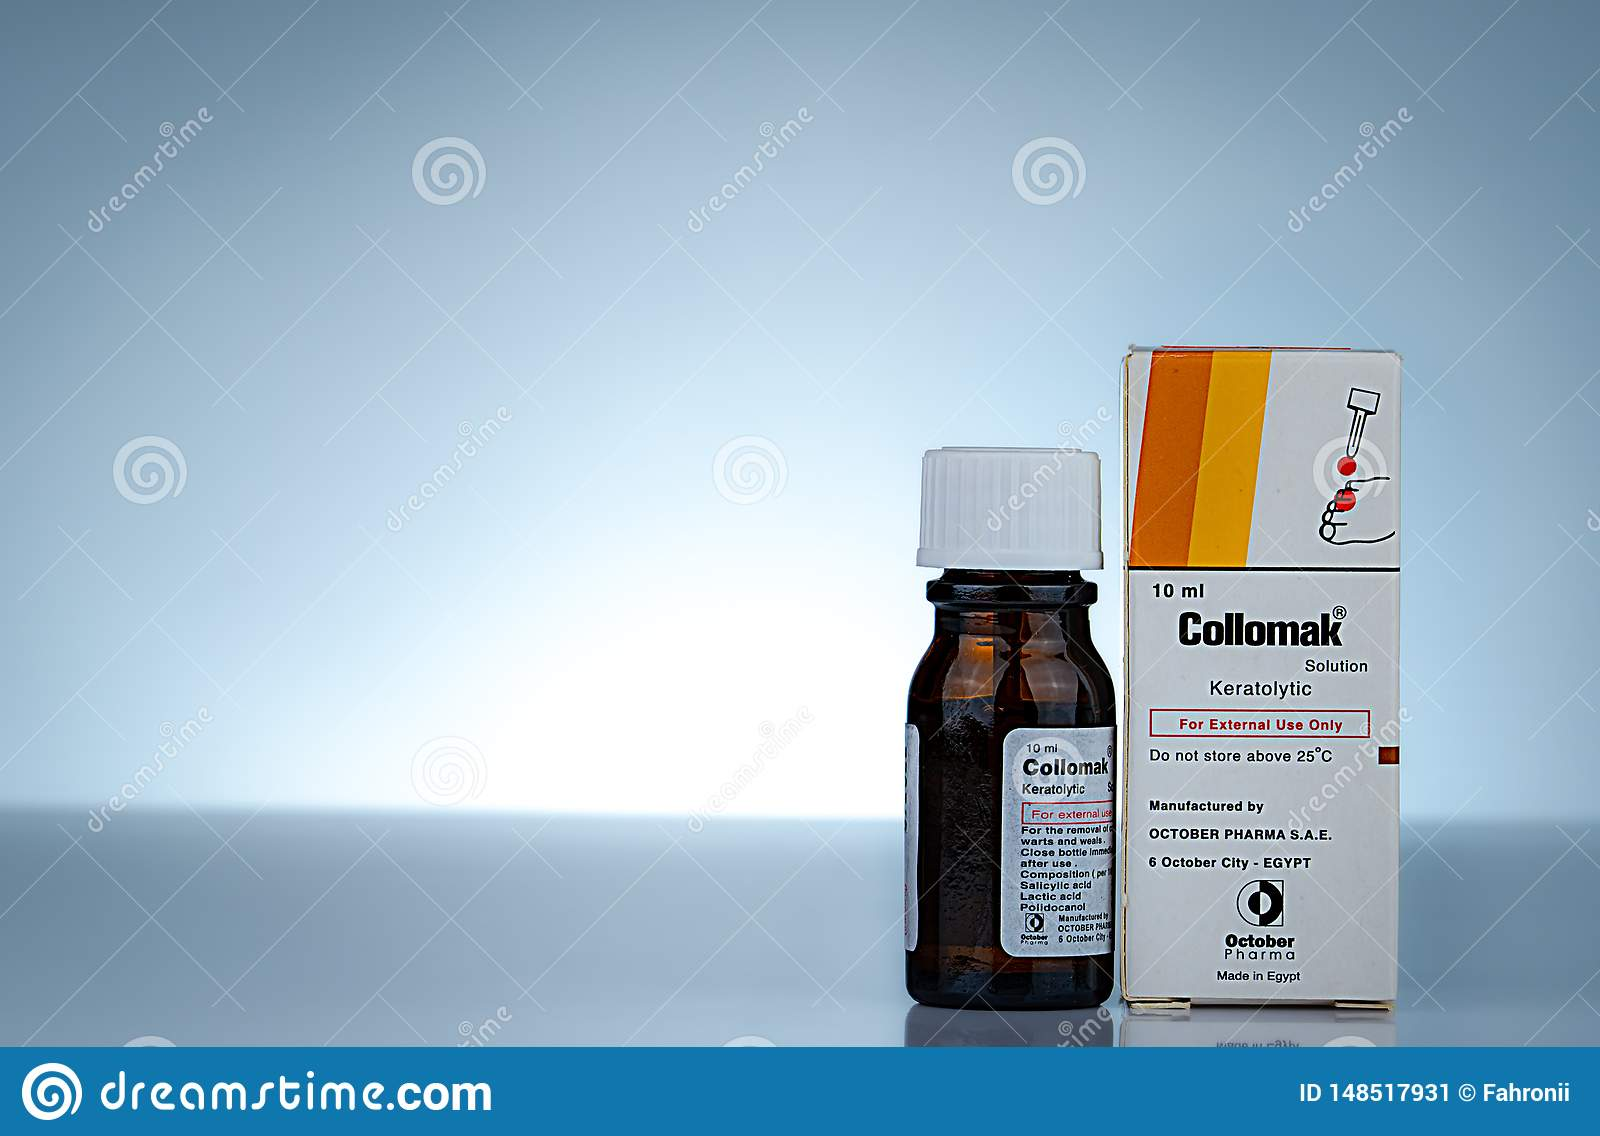 Collomak Solution Salicylic Acid Lactic Acid And Polidocanol Keratolytic For External Use Only Medicine For Removal Corns Editorial Photo Image Of Health Illness 148517931